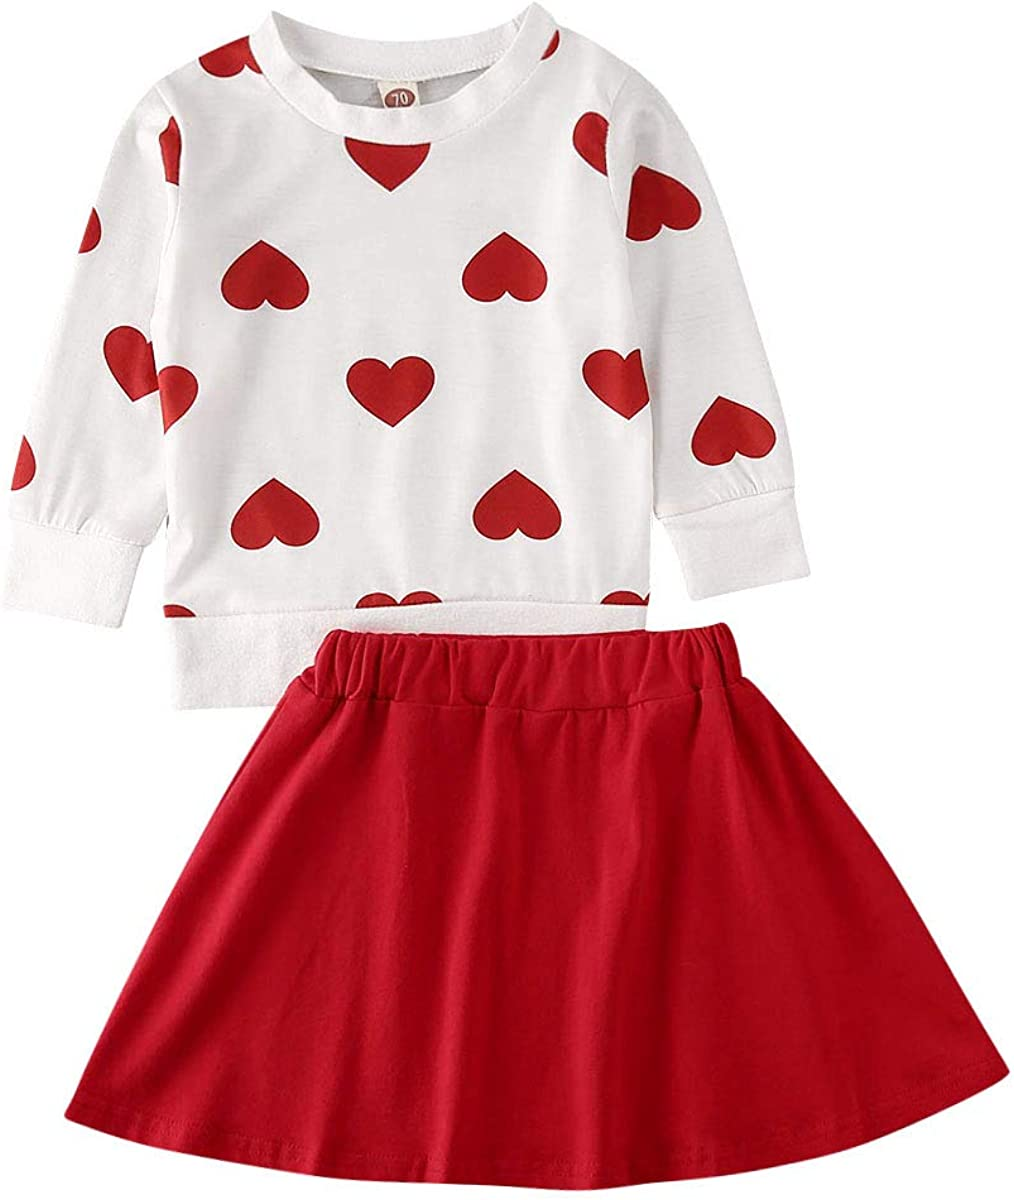 2PCS/3PCS Toddler Baby Summer Fashion Outfits Kids Ruffle T-Shirt Tops Print Heart Shape Pullover Clothes Set